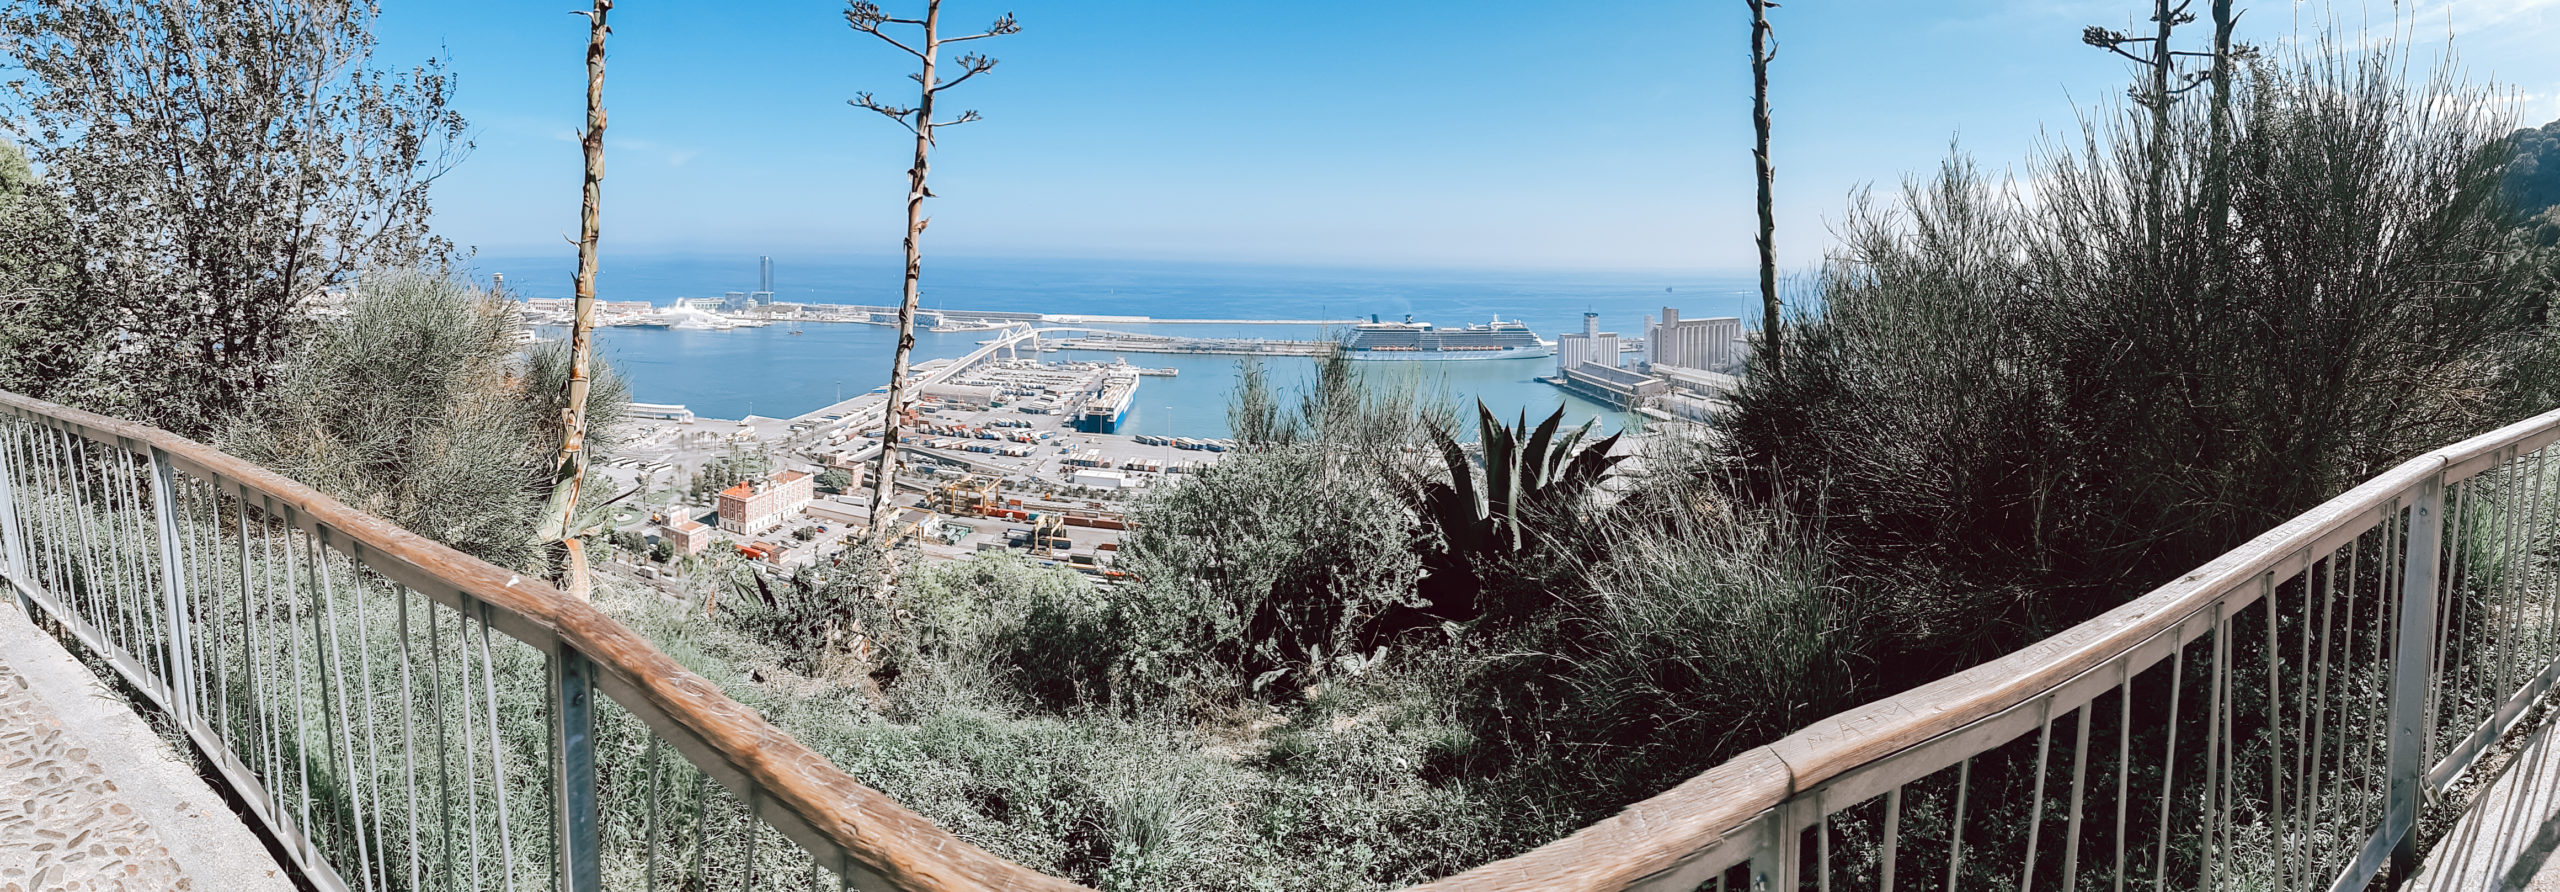 montjuic hill barcelona barcelona harbour view livinglikev fashion blogger living like v